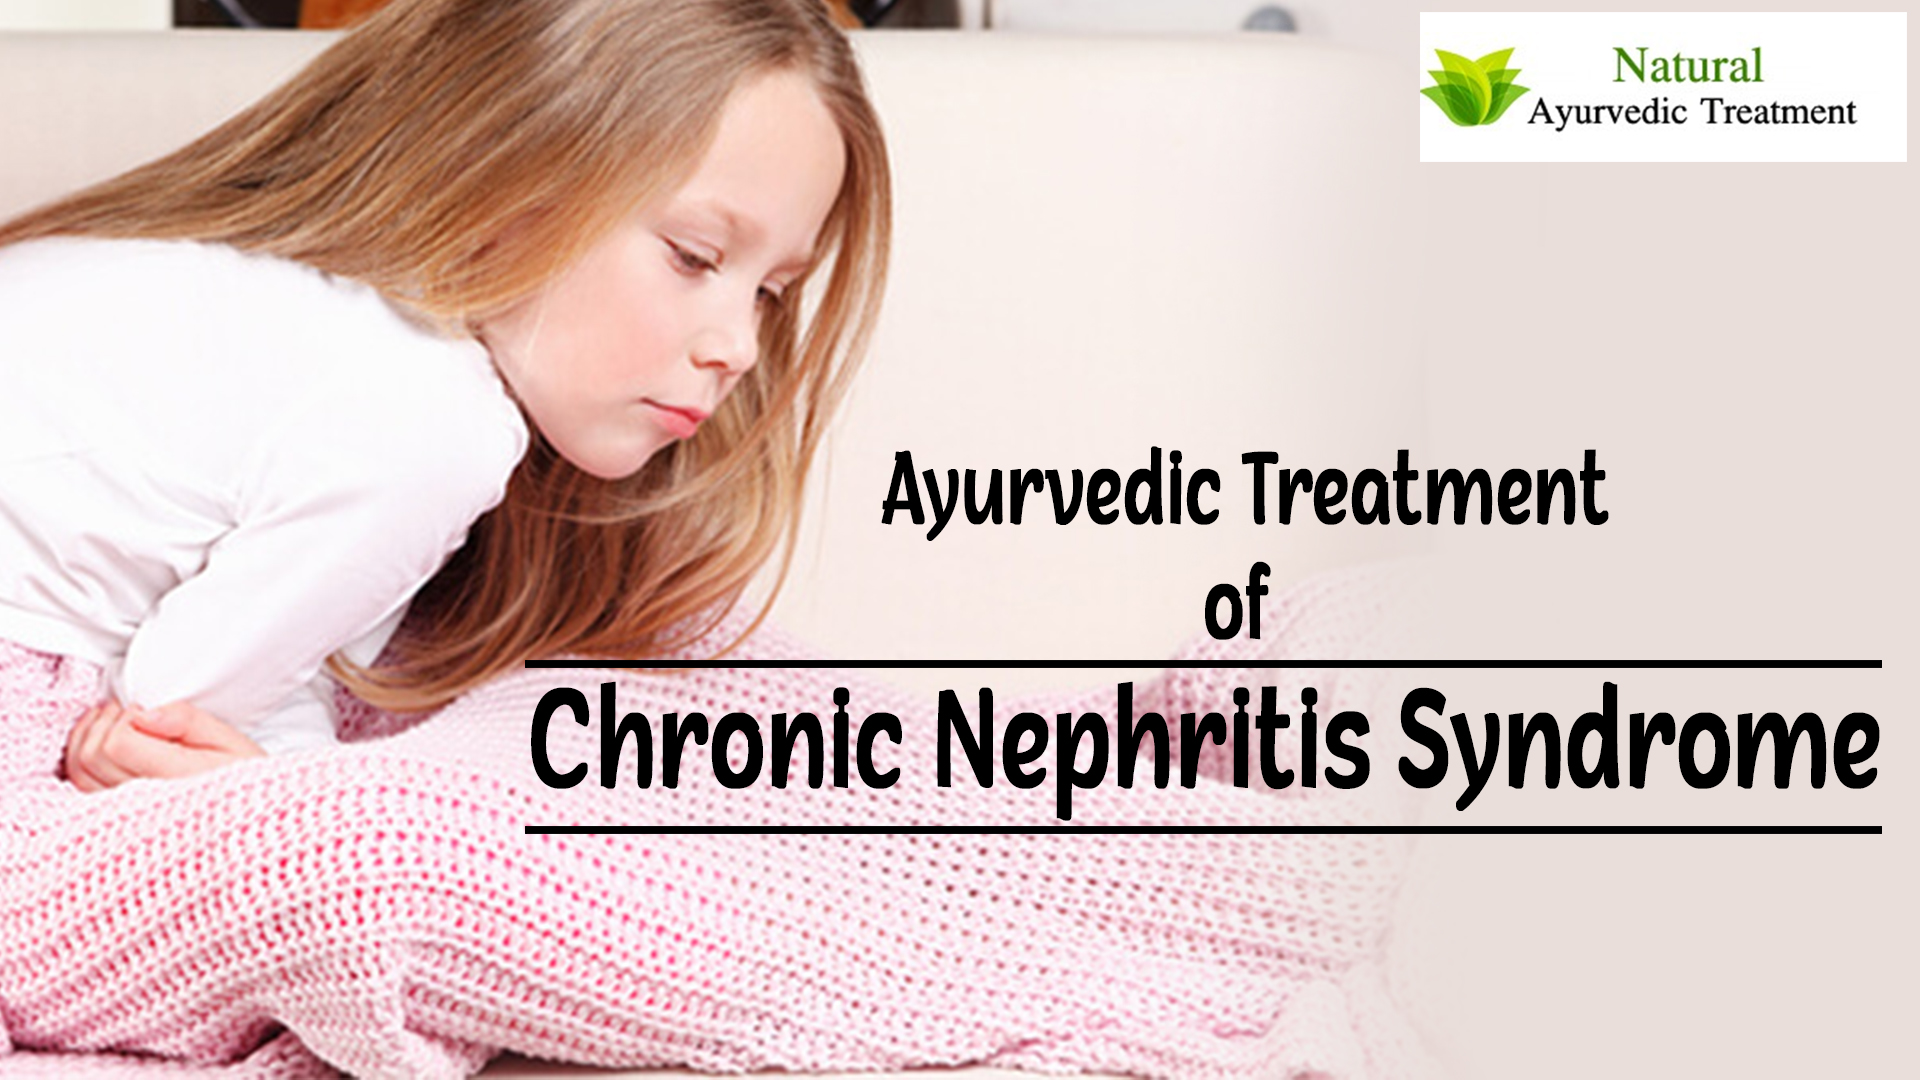 Herbal Remedies for Chronic Nephritis Syndrome - Symptoms, Causes & Treatment